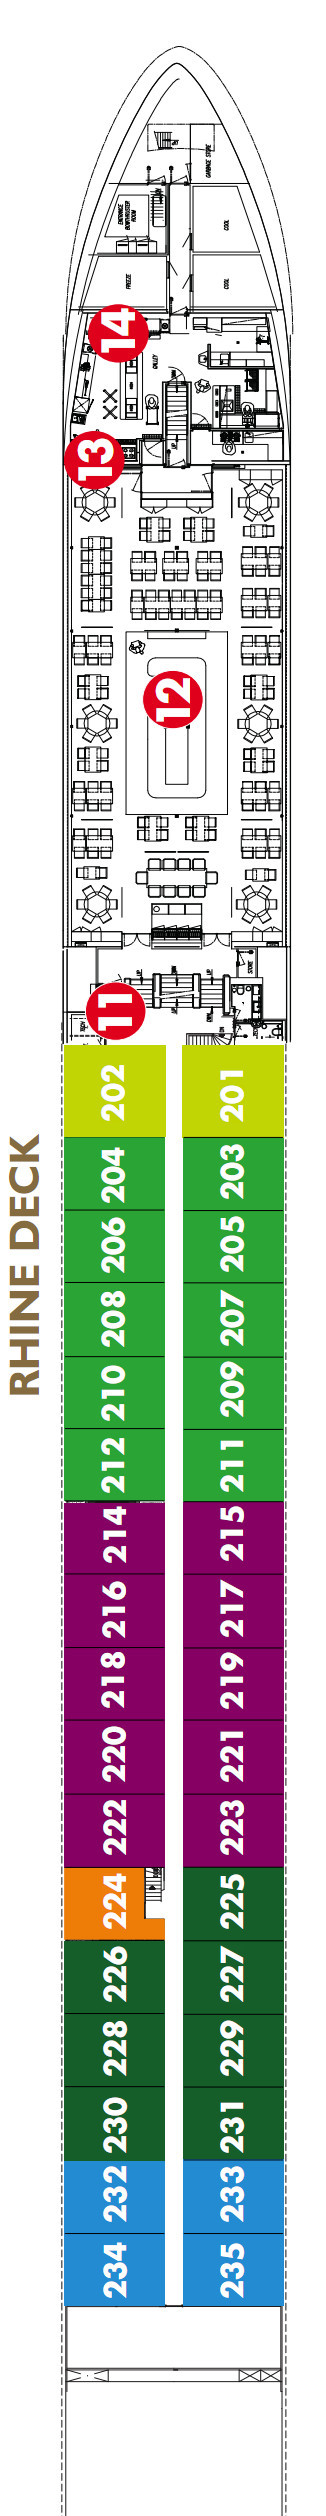 Scenic Ruby Rhine Deck layout